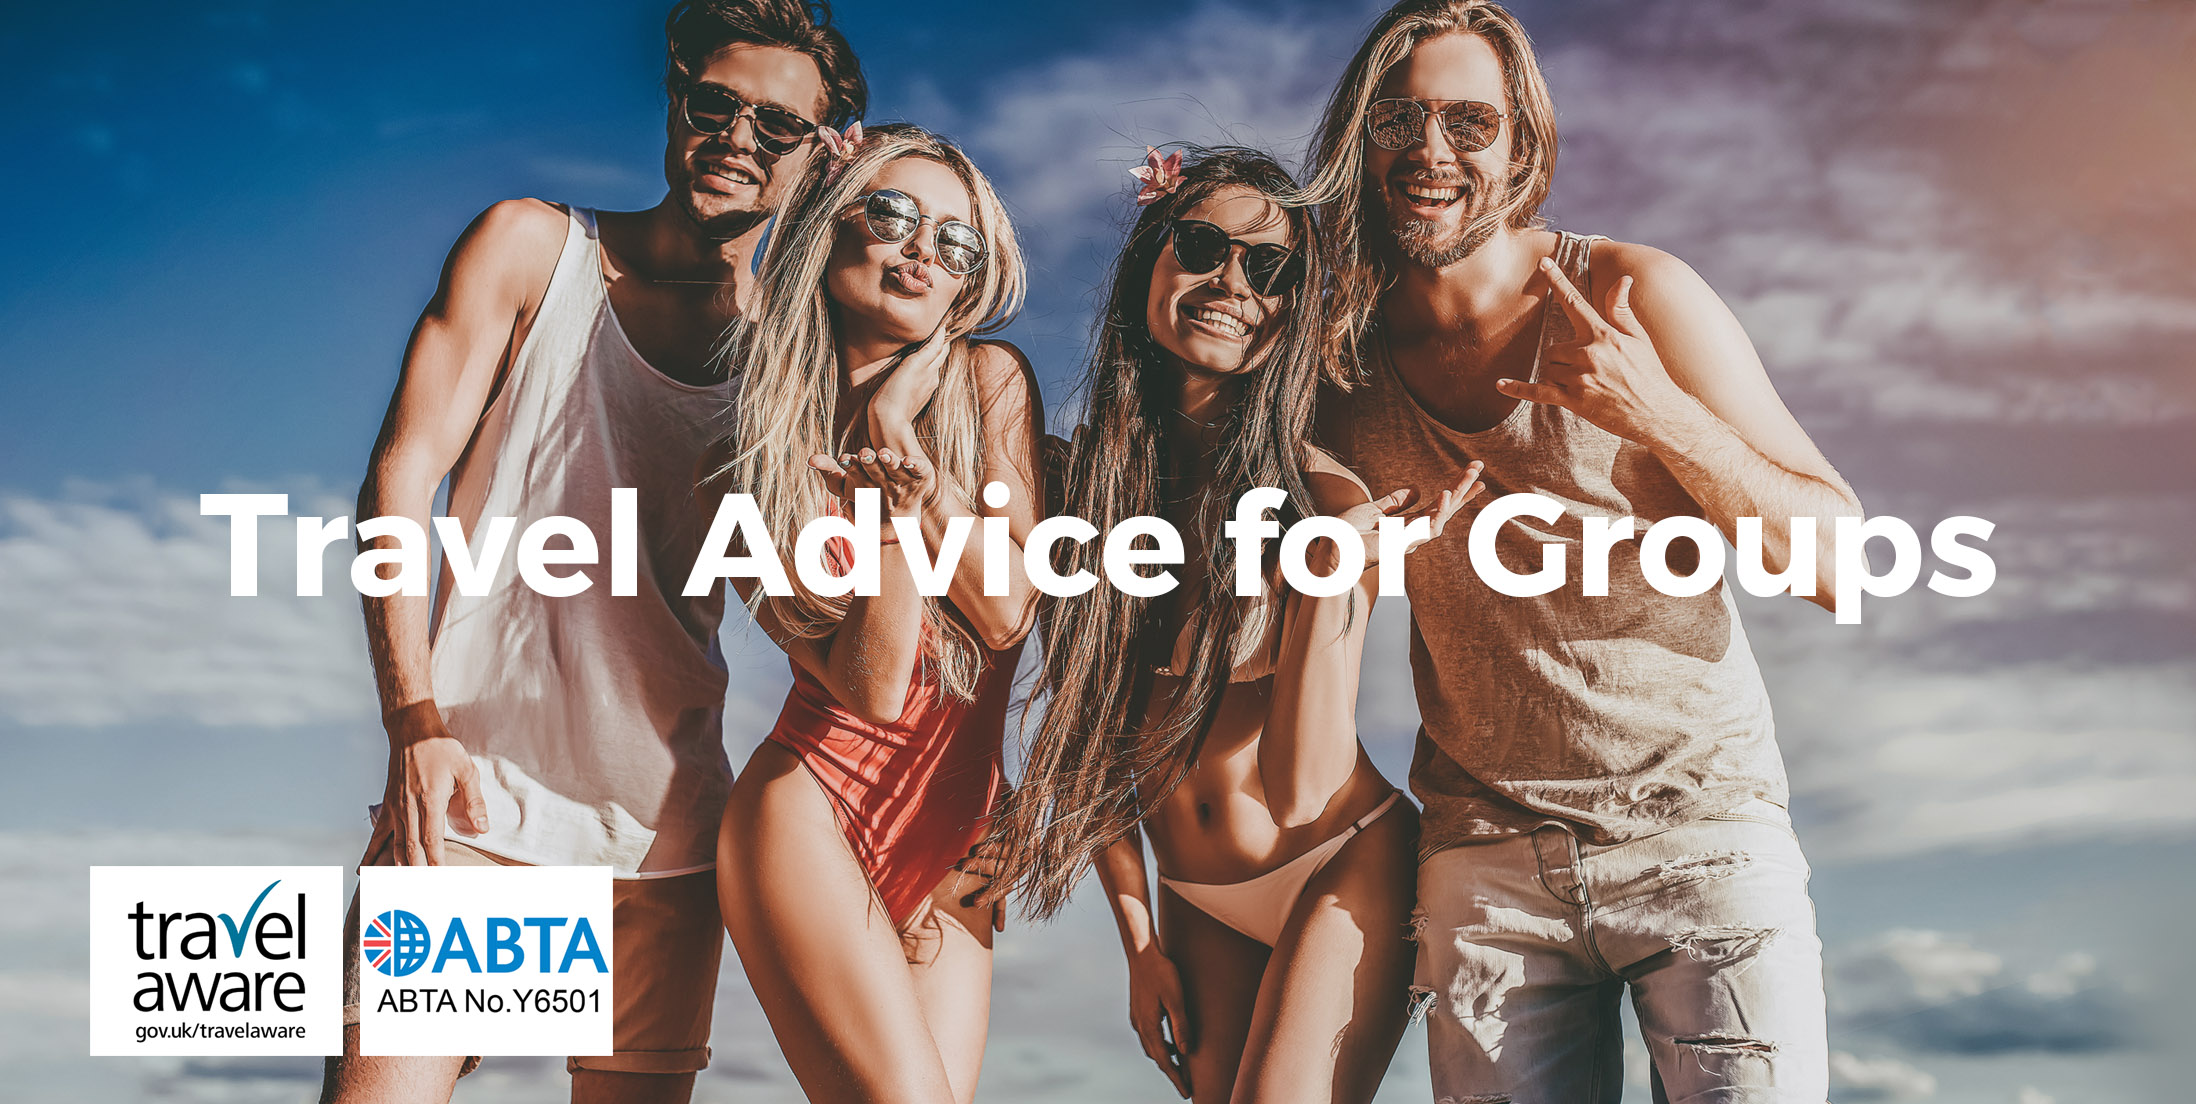 Travel Advice for Groups